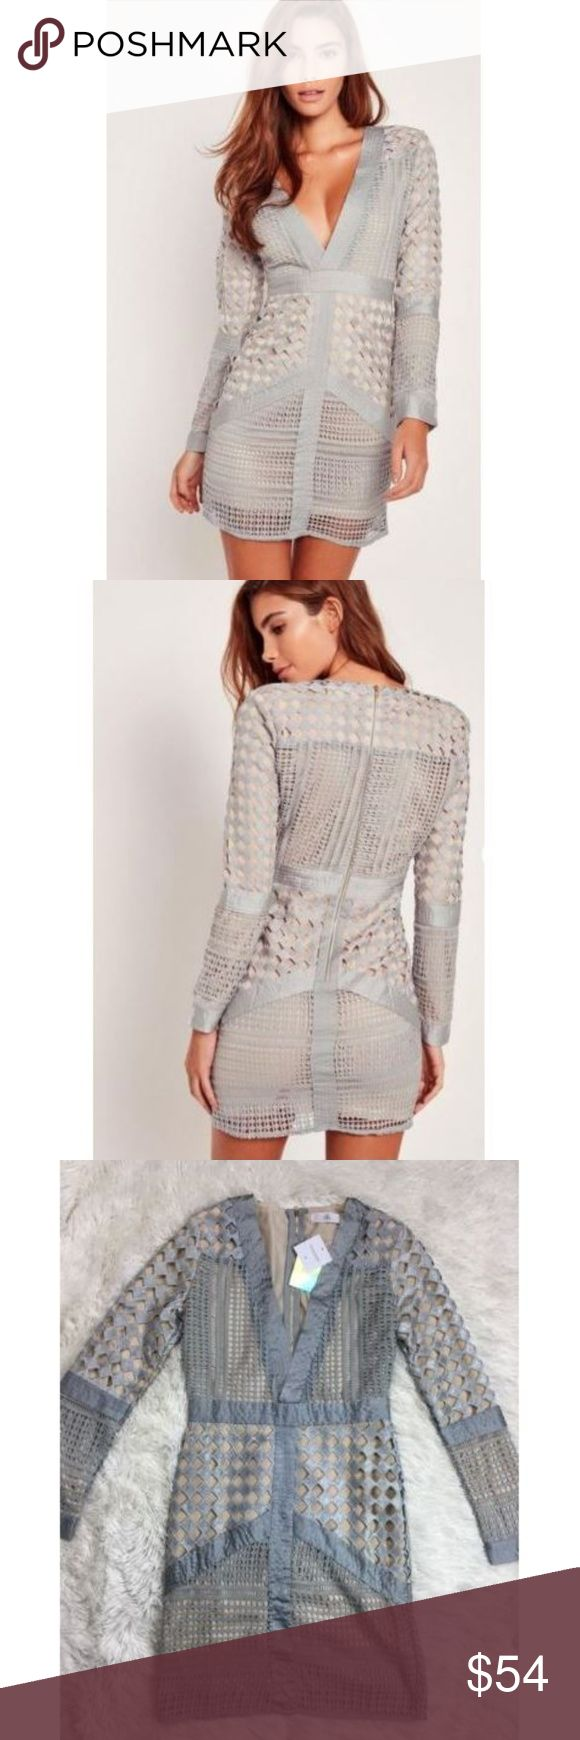 Missguided Dress USA 6 Gray Plunge Bodycon Caged Missguided Dress USA sz 6 Gray Plunge Bodycon Caged Cocktail Mini Nude Lined NEW Total length is 35 inches unstretched. Bust is 40 inches, unstretched d99 Missguided Dresses Mini